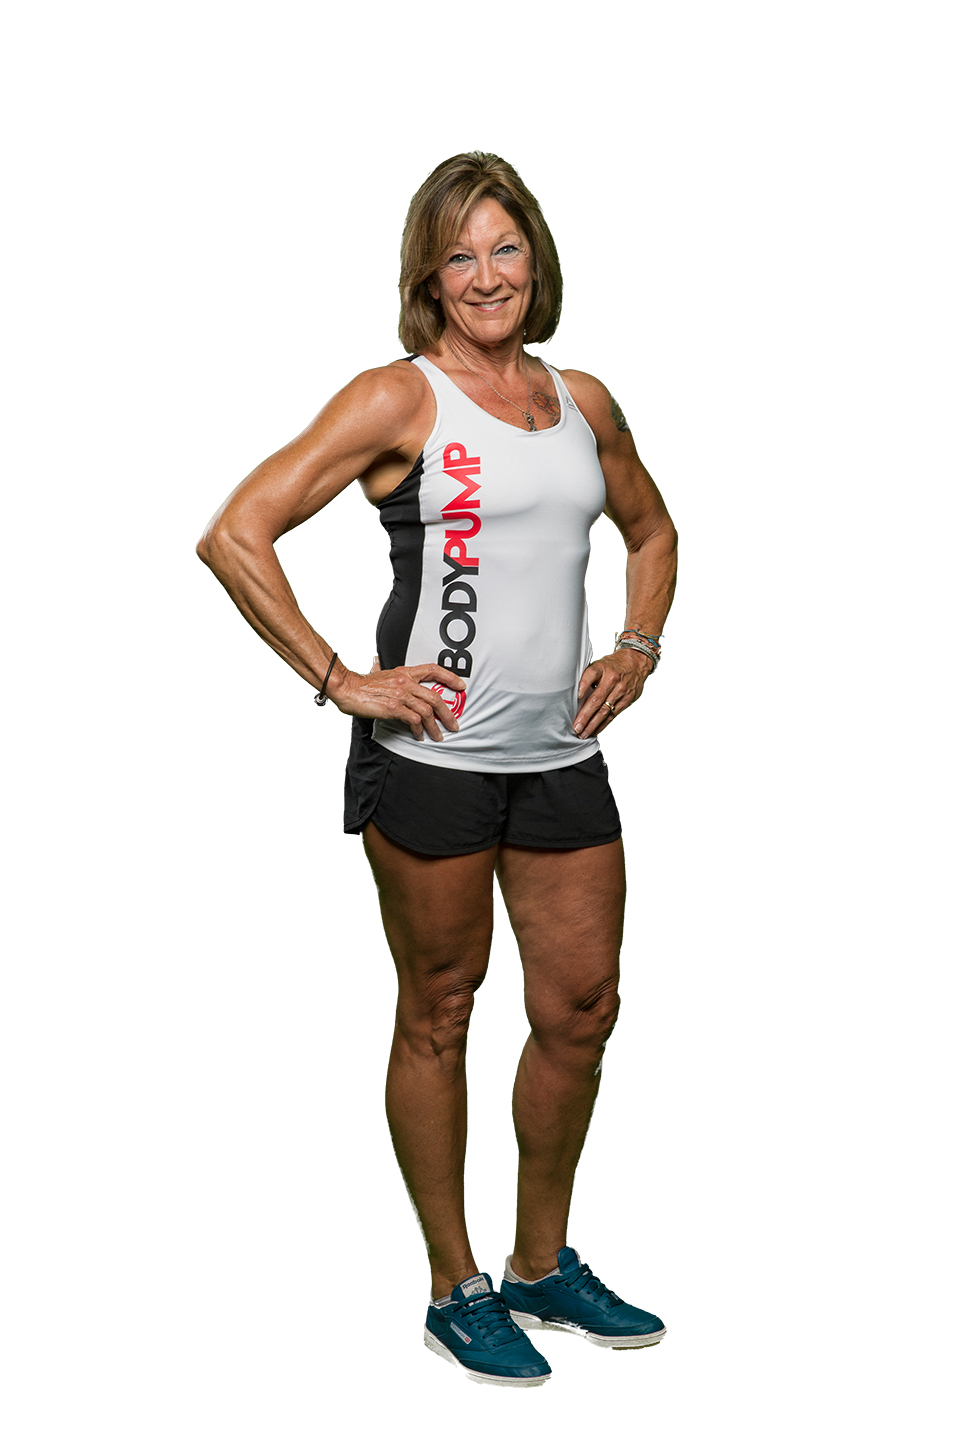 Cheryl - RPM, and BodyPump InstructorCheryl is an Ace certified personal trainer OCB Pro physique bodybuilder Nickname